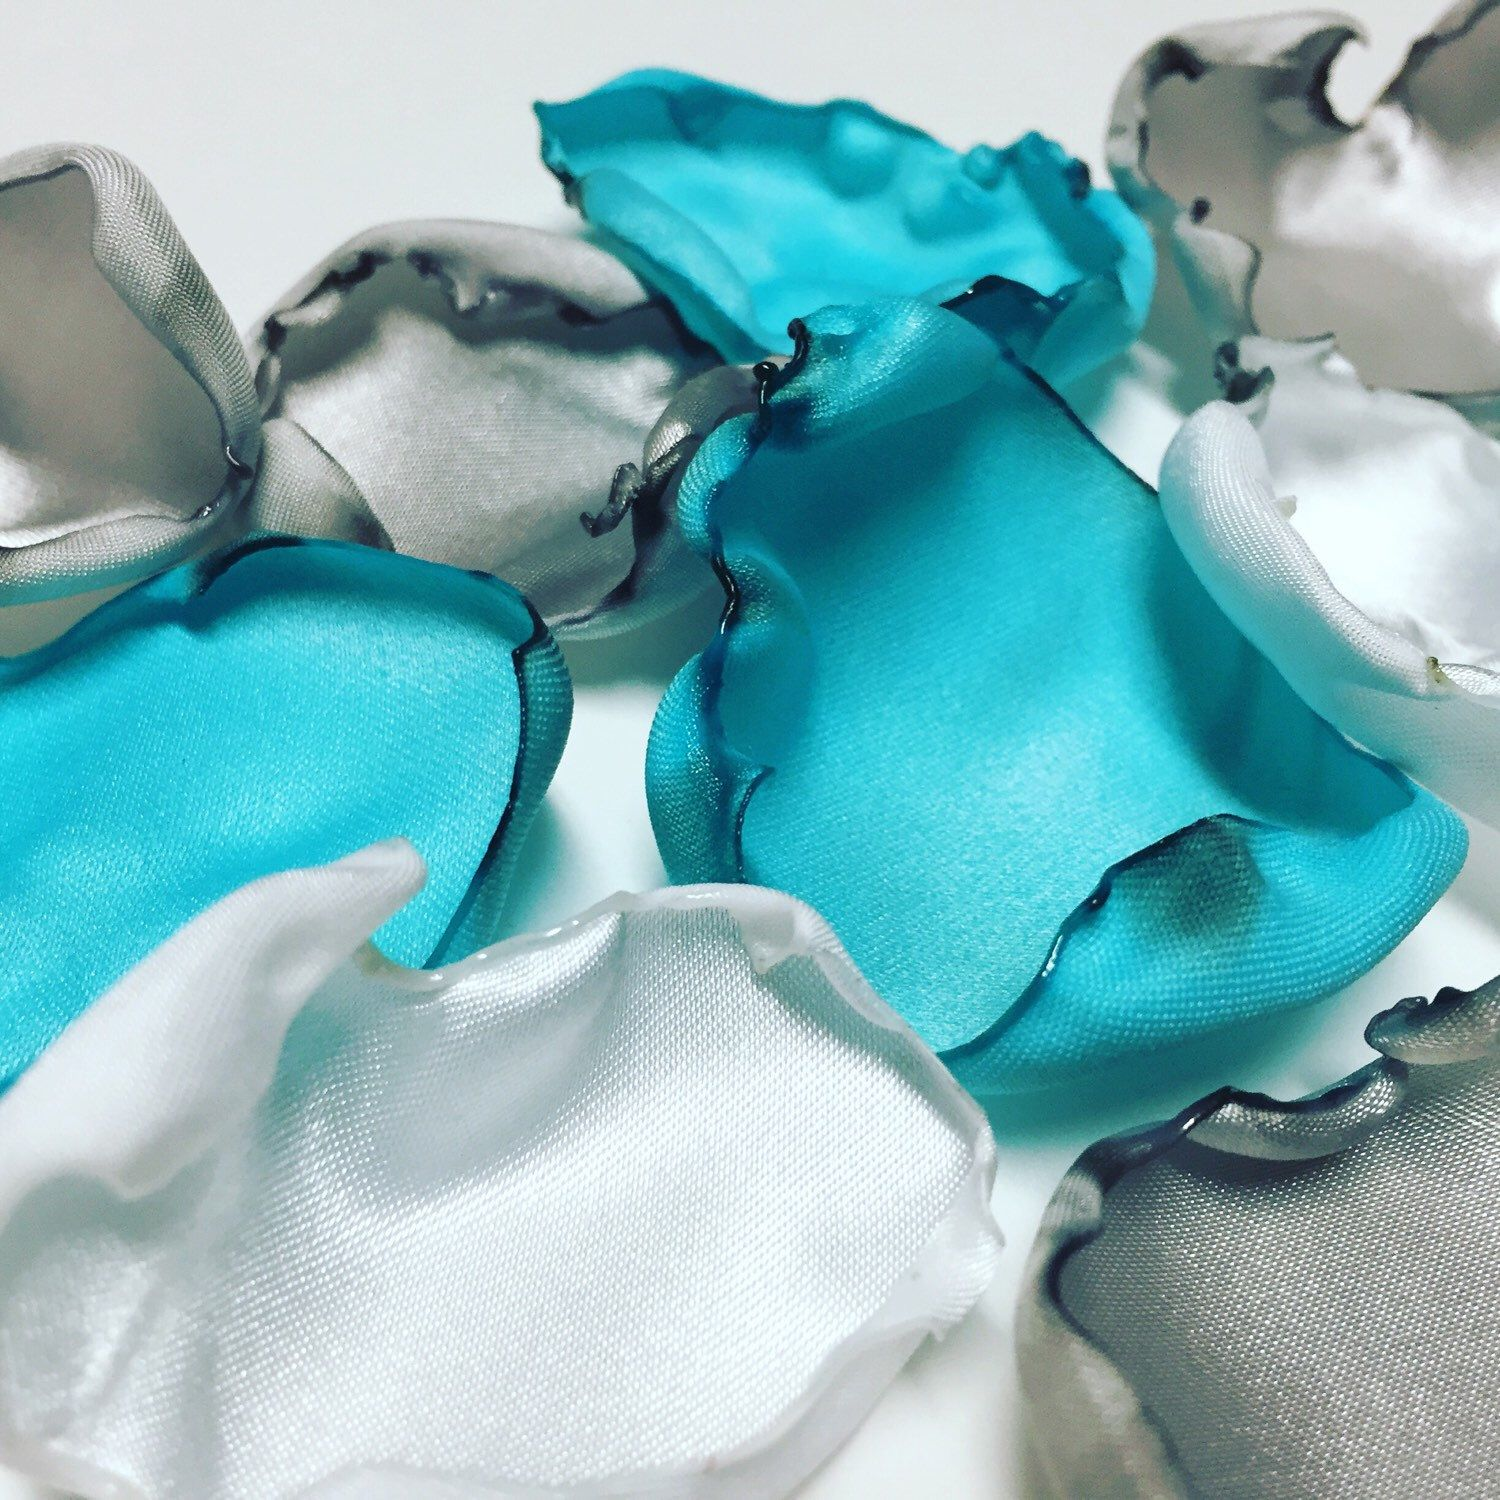 New color combo flower petals https://www.etsy.com/listing/271411652/turquoise-white-and-grey-mix-flower #wedding #flowergirls #bride #weddingplanner